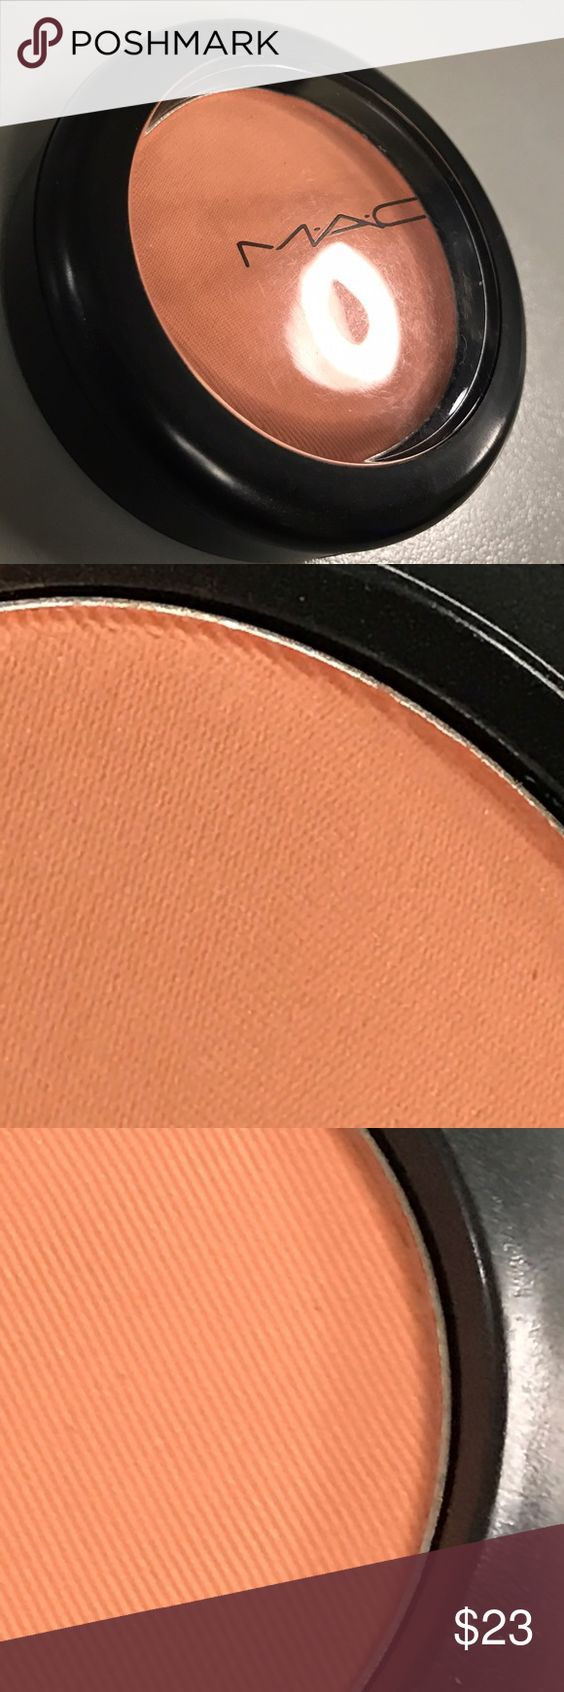 MAC My Highland Honey Blush Tartan Tale NEW LE DC Beautiful rich shade of peach-orange satin finish, buildable or easily sheered out. LE DC. New, no box. MAC Cosmetics Makeup Blush